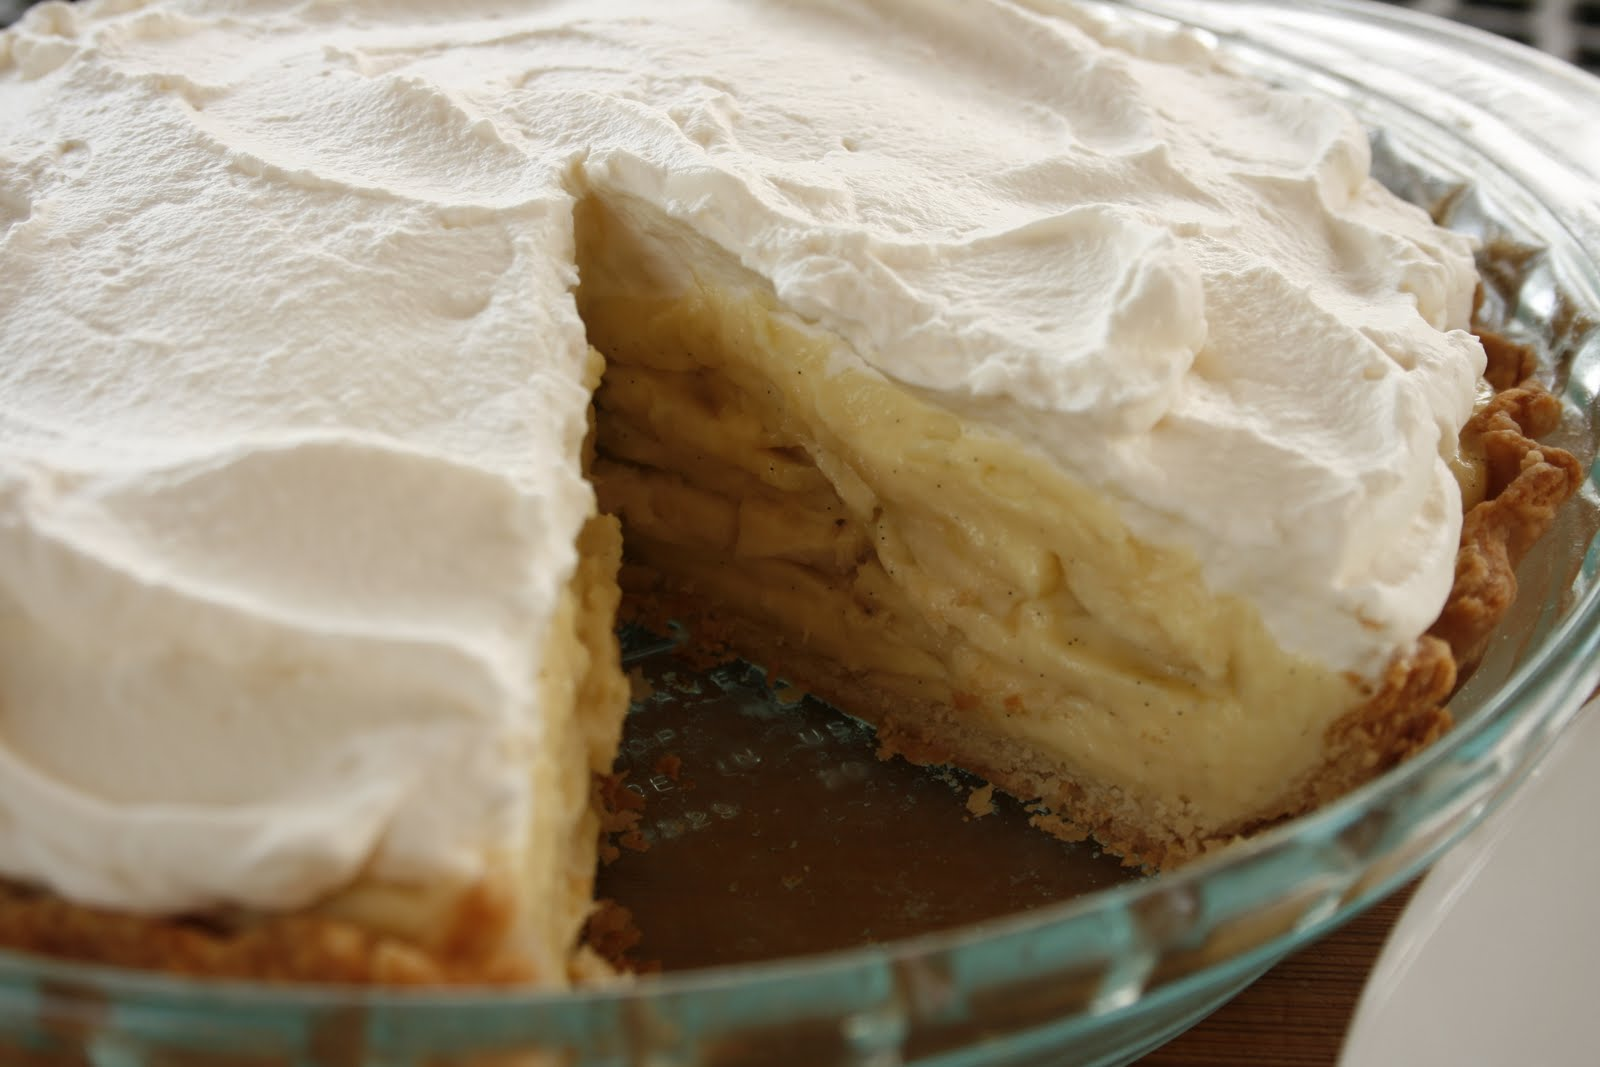 Laura's Sweet Spot: Banana Cream Pie